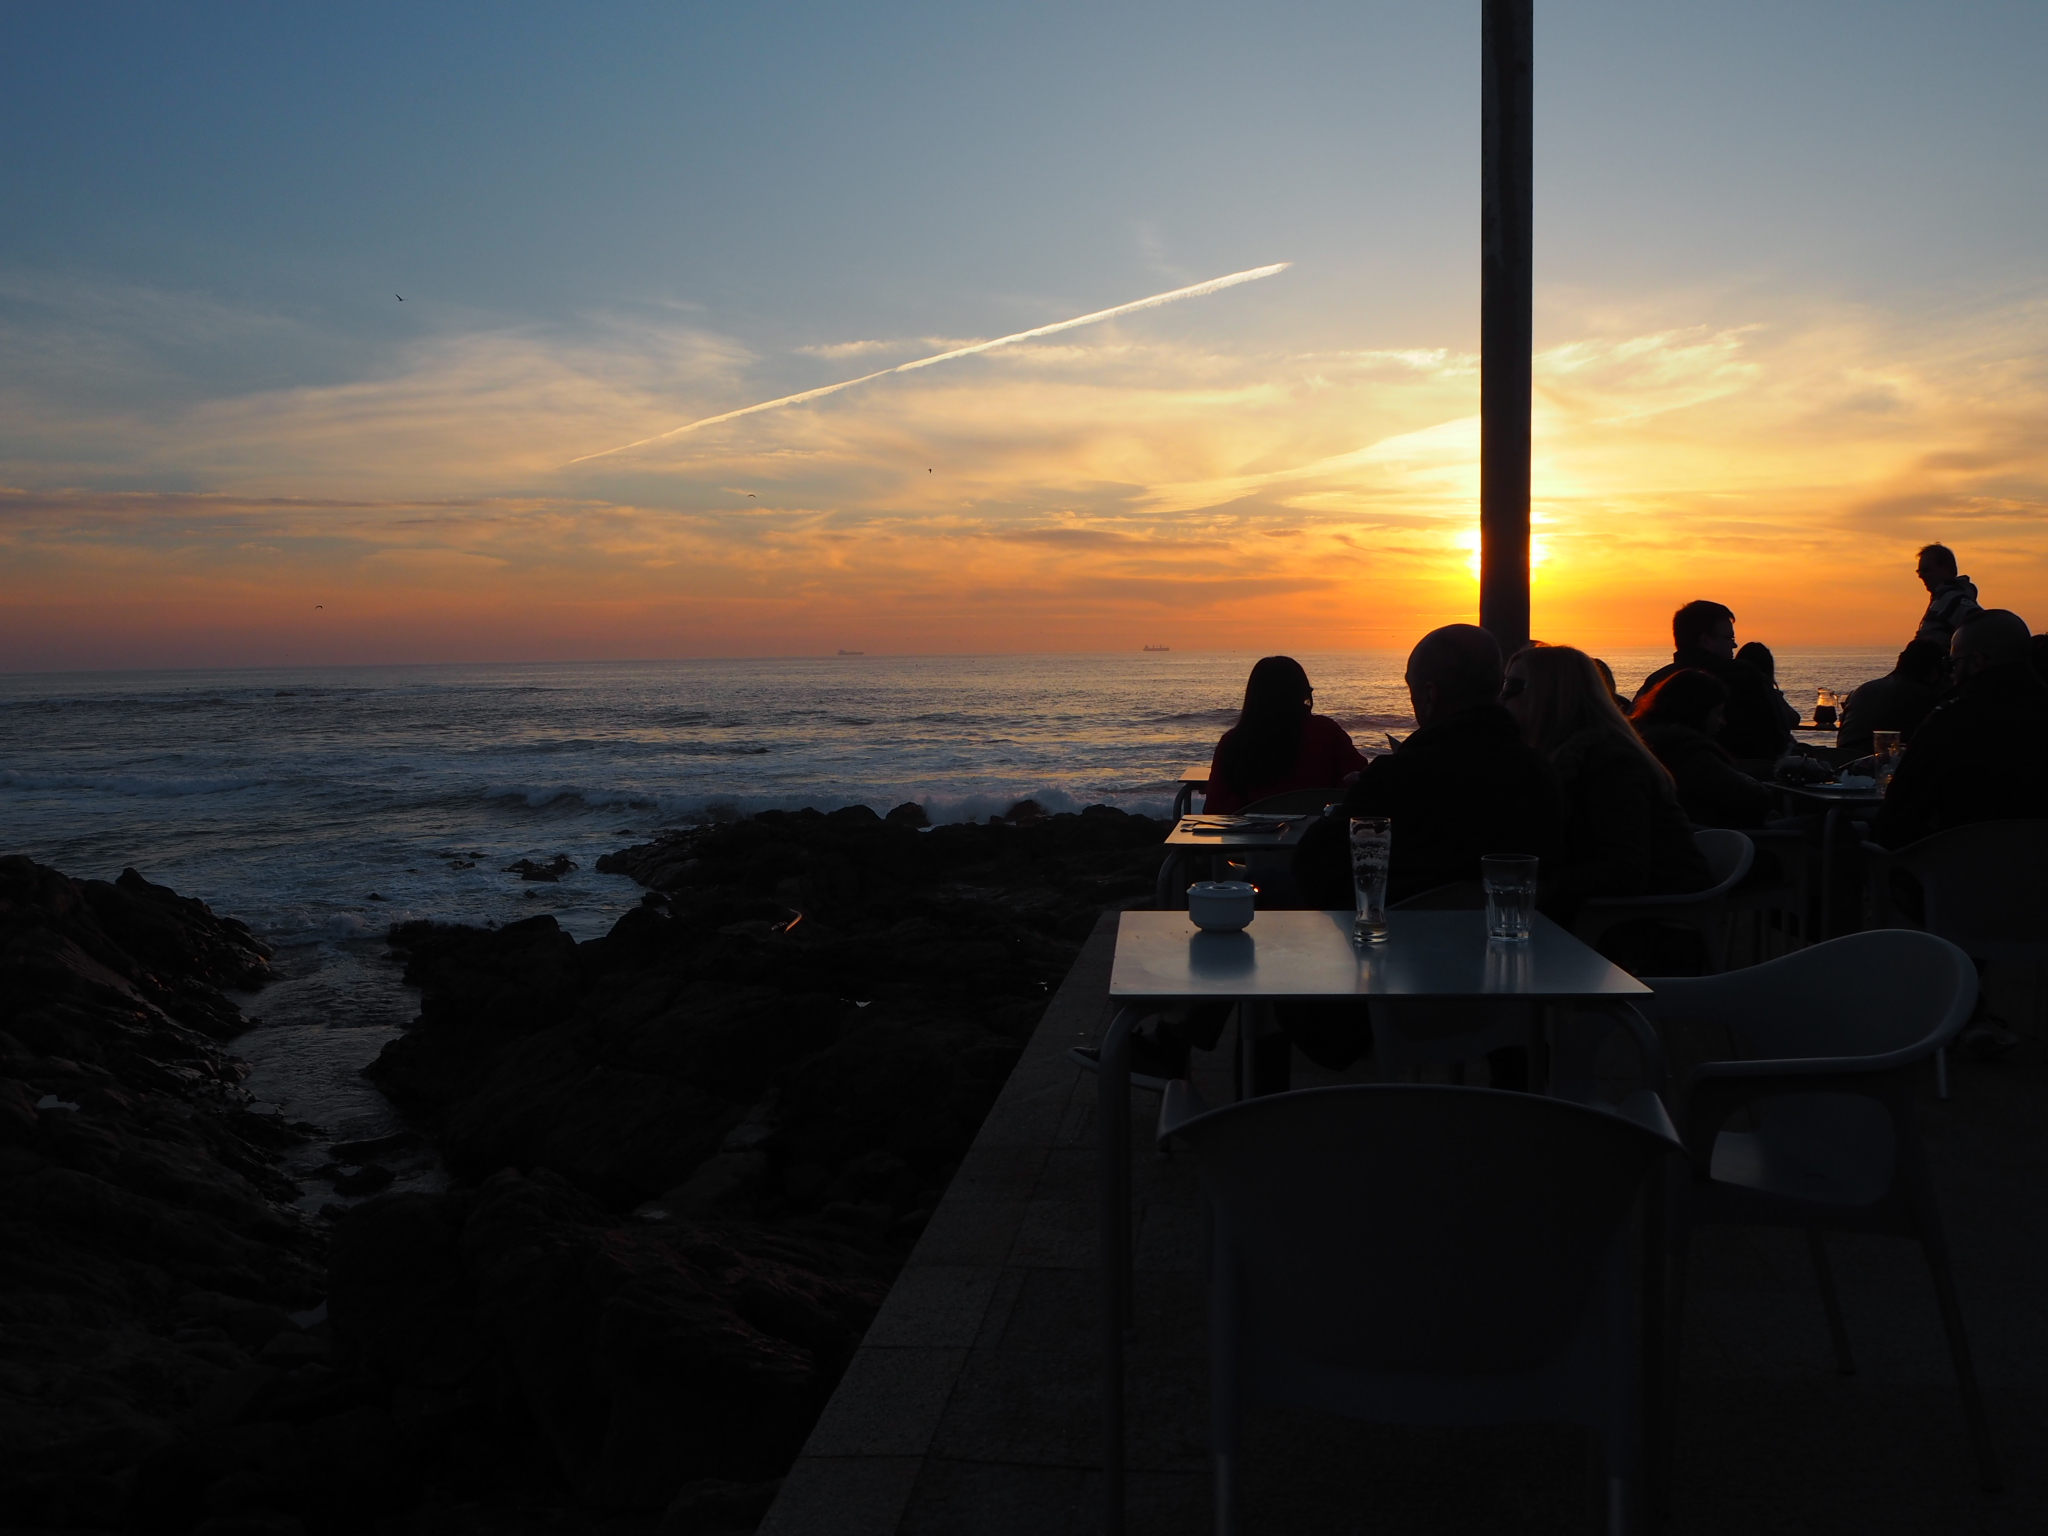 Sunset View iBar Porto